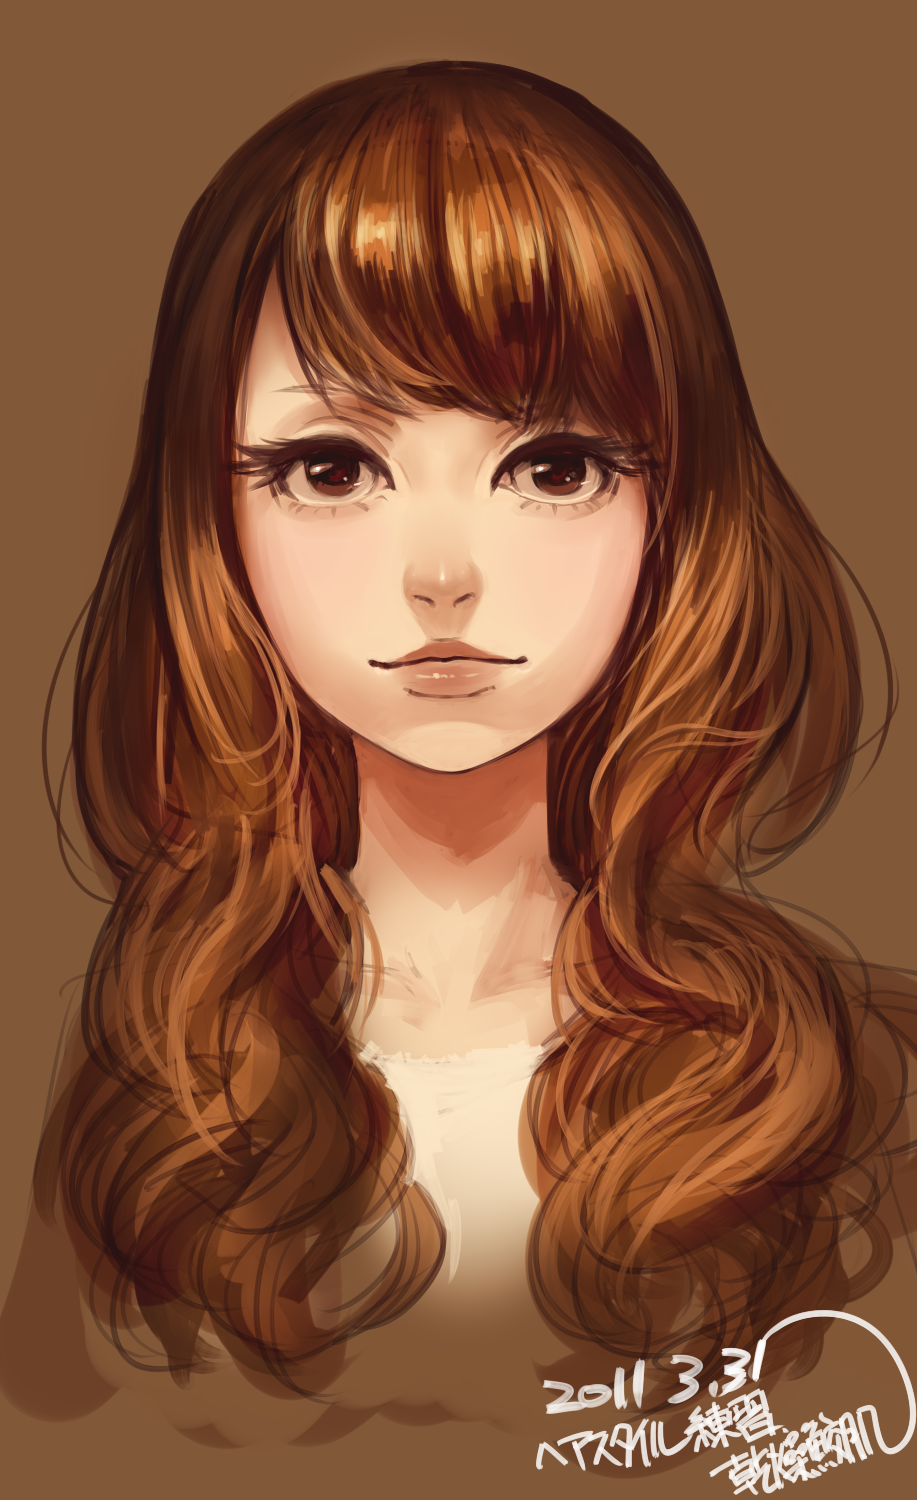 Safebooru Anime Picture Search Engine Brown Eyes Brown Hair Bust Close Up Face Highres Kansou Sameha Close Up Faces Digital Art Girl Brown Hair Brown Eyes